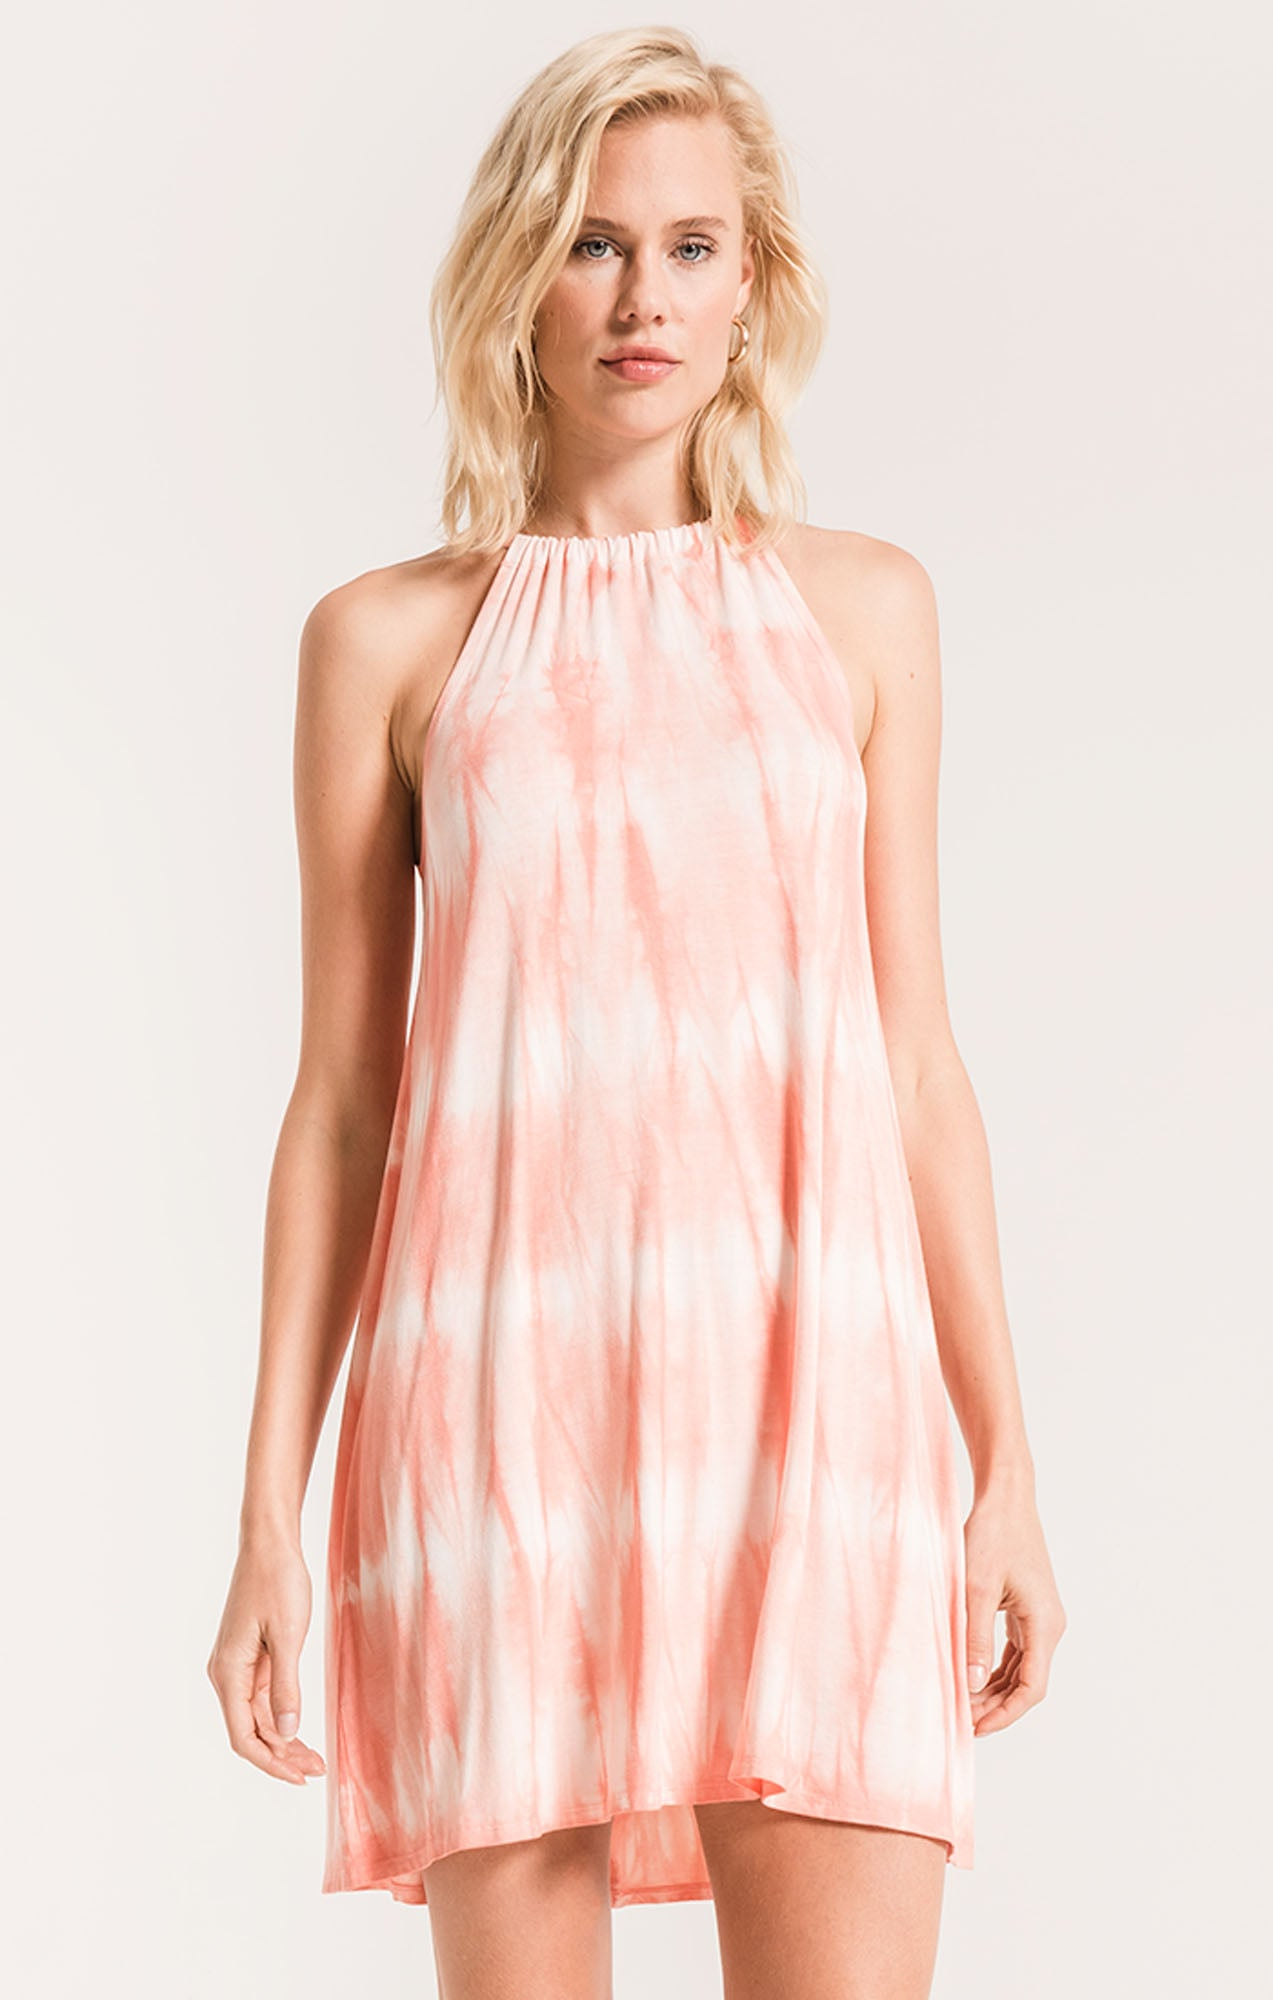 Dresses The Tie-Dye Halter Swing Dress Coral Haze